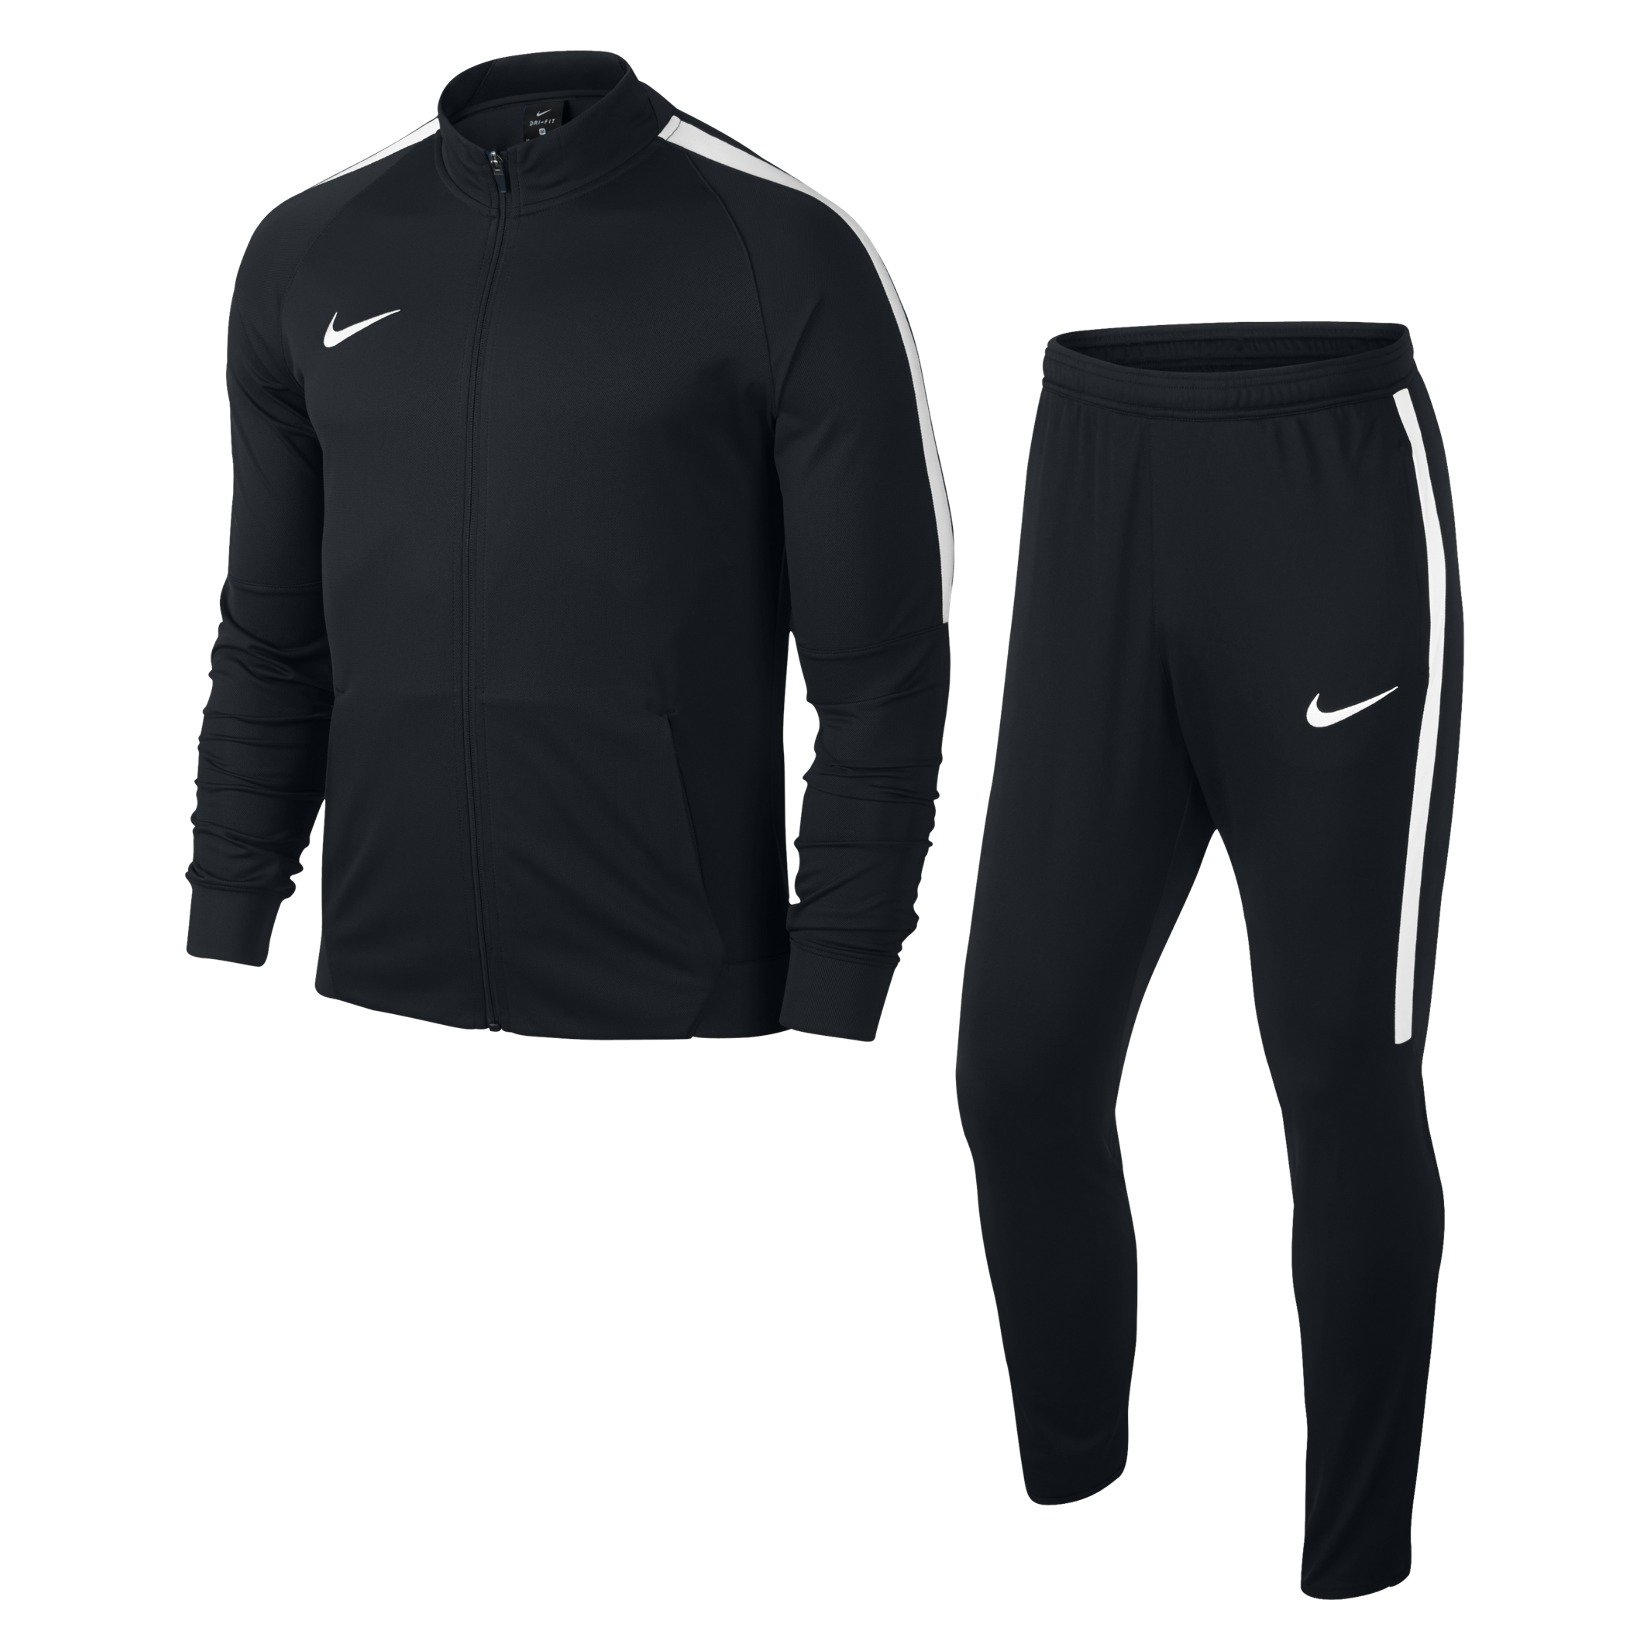 NIKE Men's Tracksuit Performance Dry Squad 17 Knit (Black, M) by NIKE